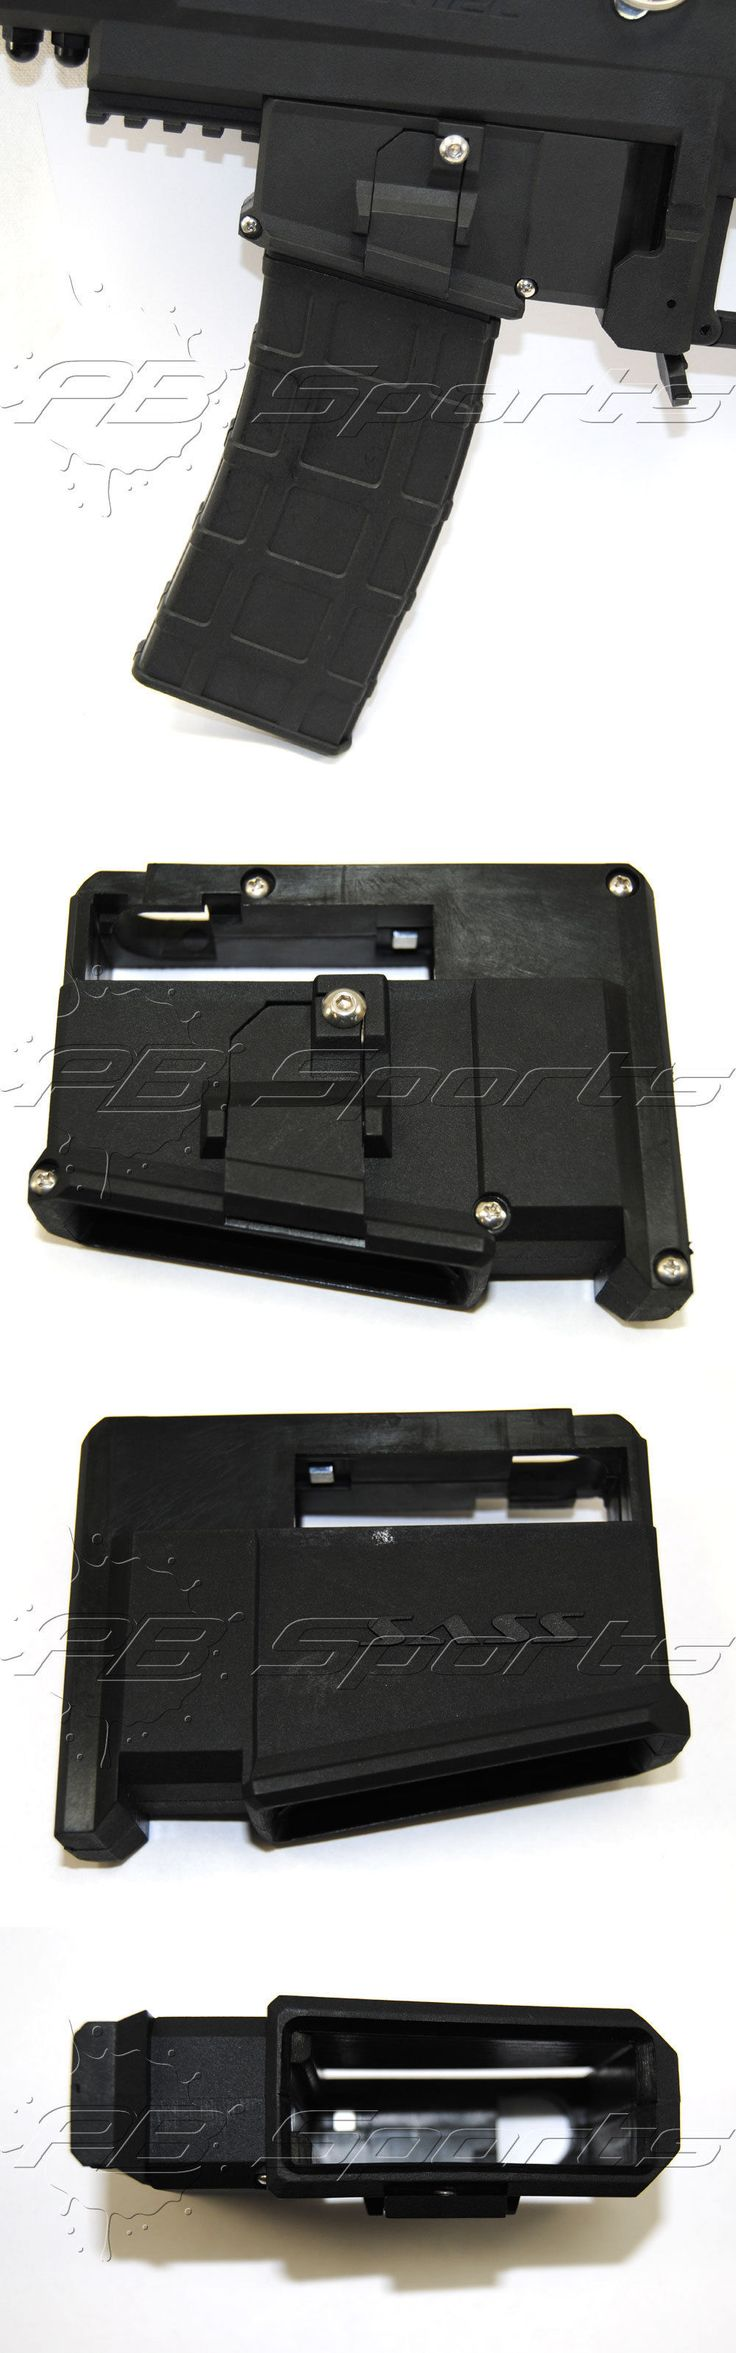 Sights 47240: New Carmatech Engineering Sar12 To Tiberius Arms T15 Magazine Adapter Upgrade -> BUY IT NOW ONLY: $75 on eBay!